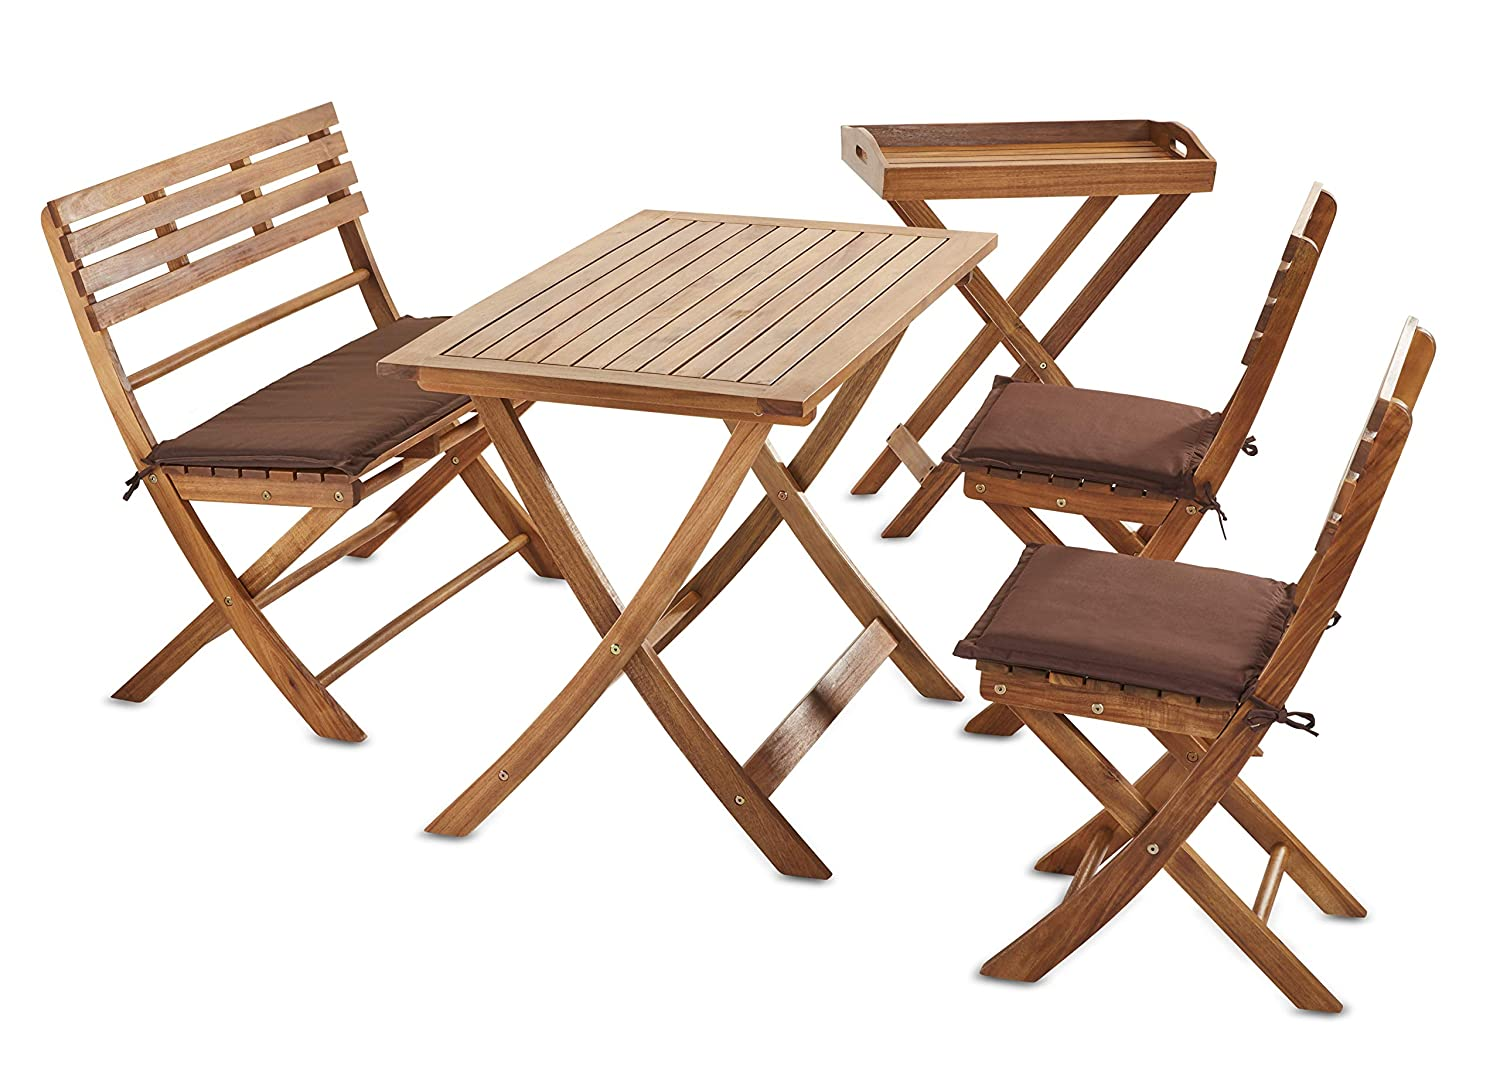 Sunset Garden SG115 Bravo Folding Patio Dining 5-Piece Real Wood, Natural